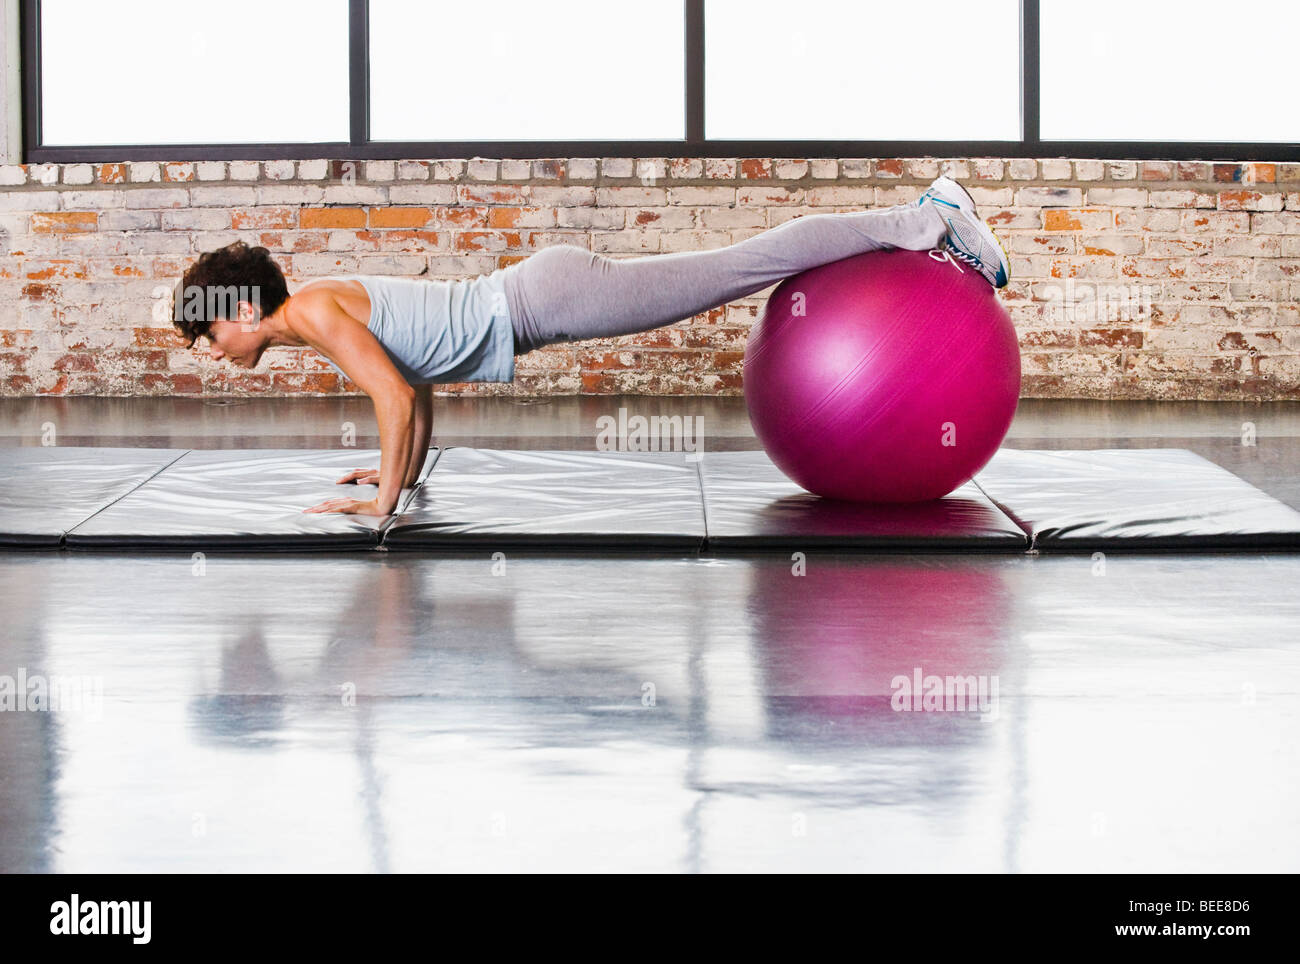 A young woman doing pushups on a mat in a healthclub while balancing her legs / feet on a exercise ball. - Stock Image